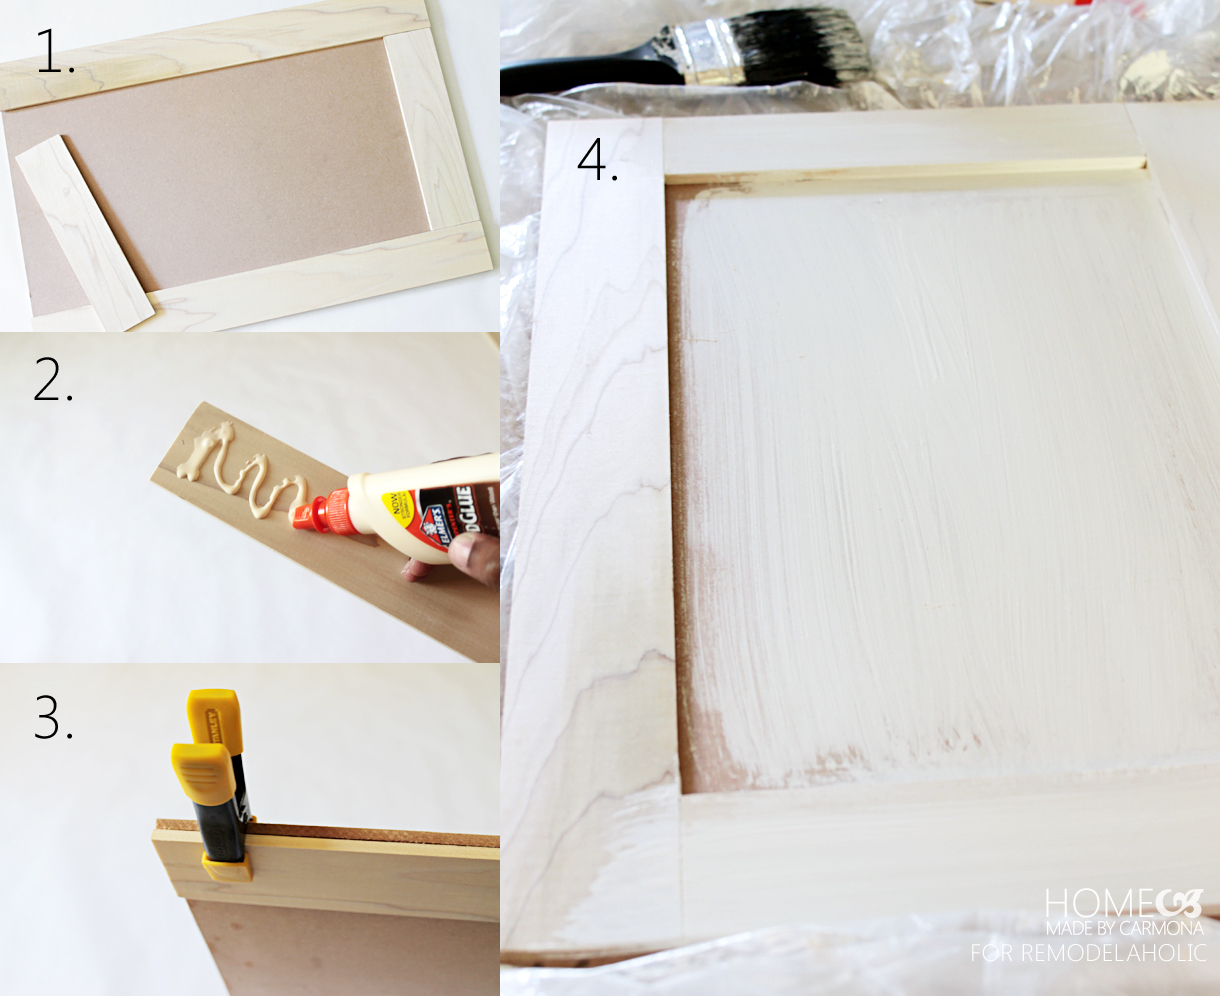 Diy Cabinet Doors Home Made By Carmona For Remodelaholic